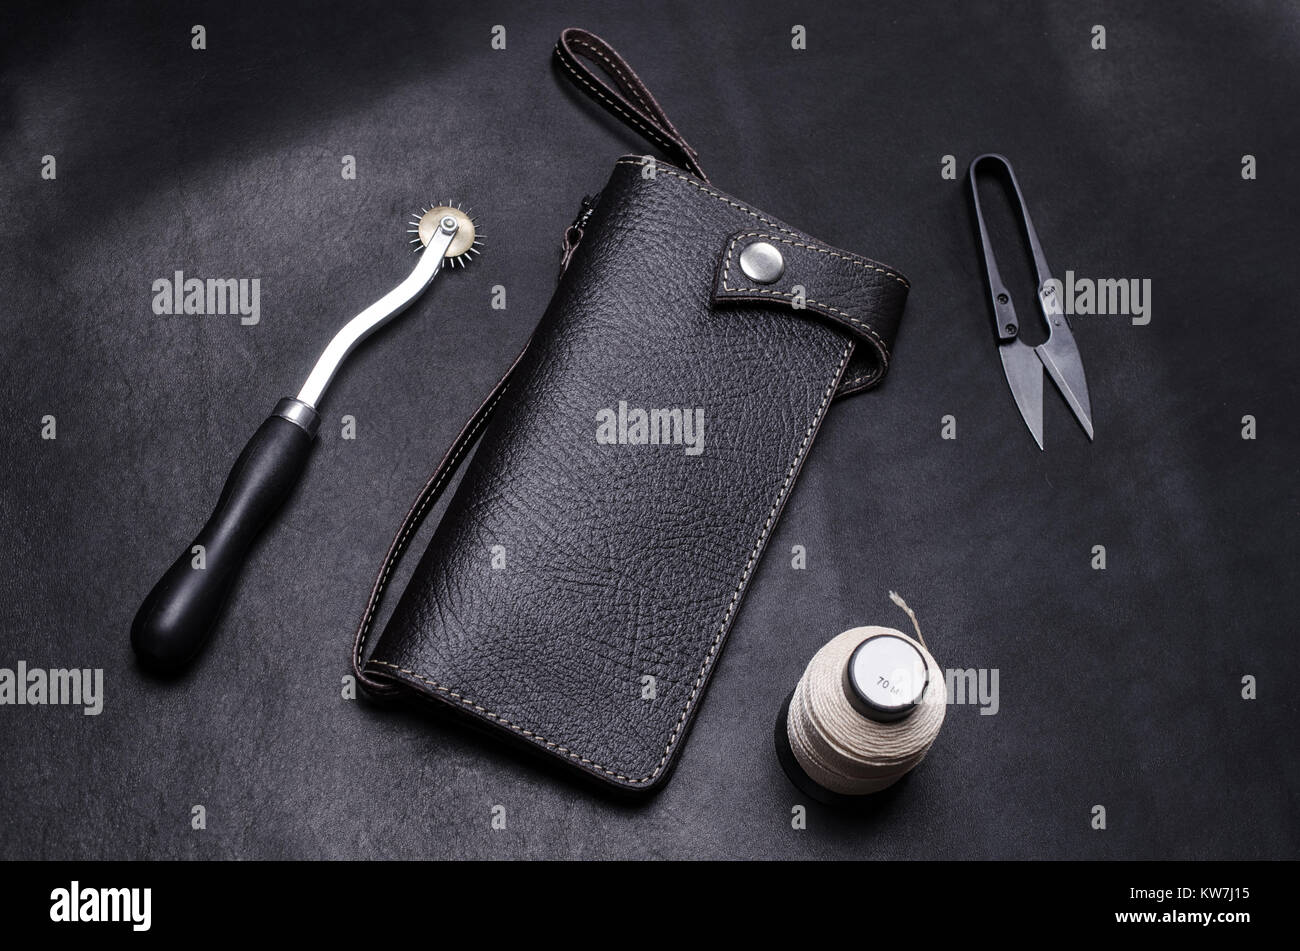 craft tools and leather purse on a black work table. - Stock Image